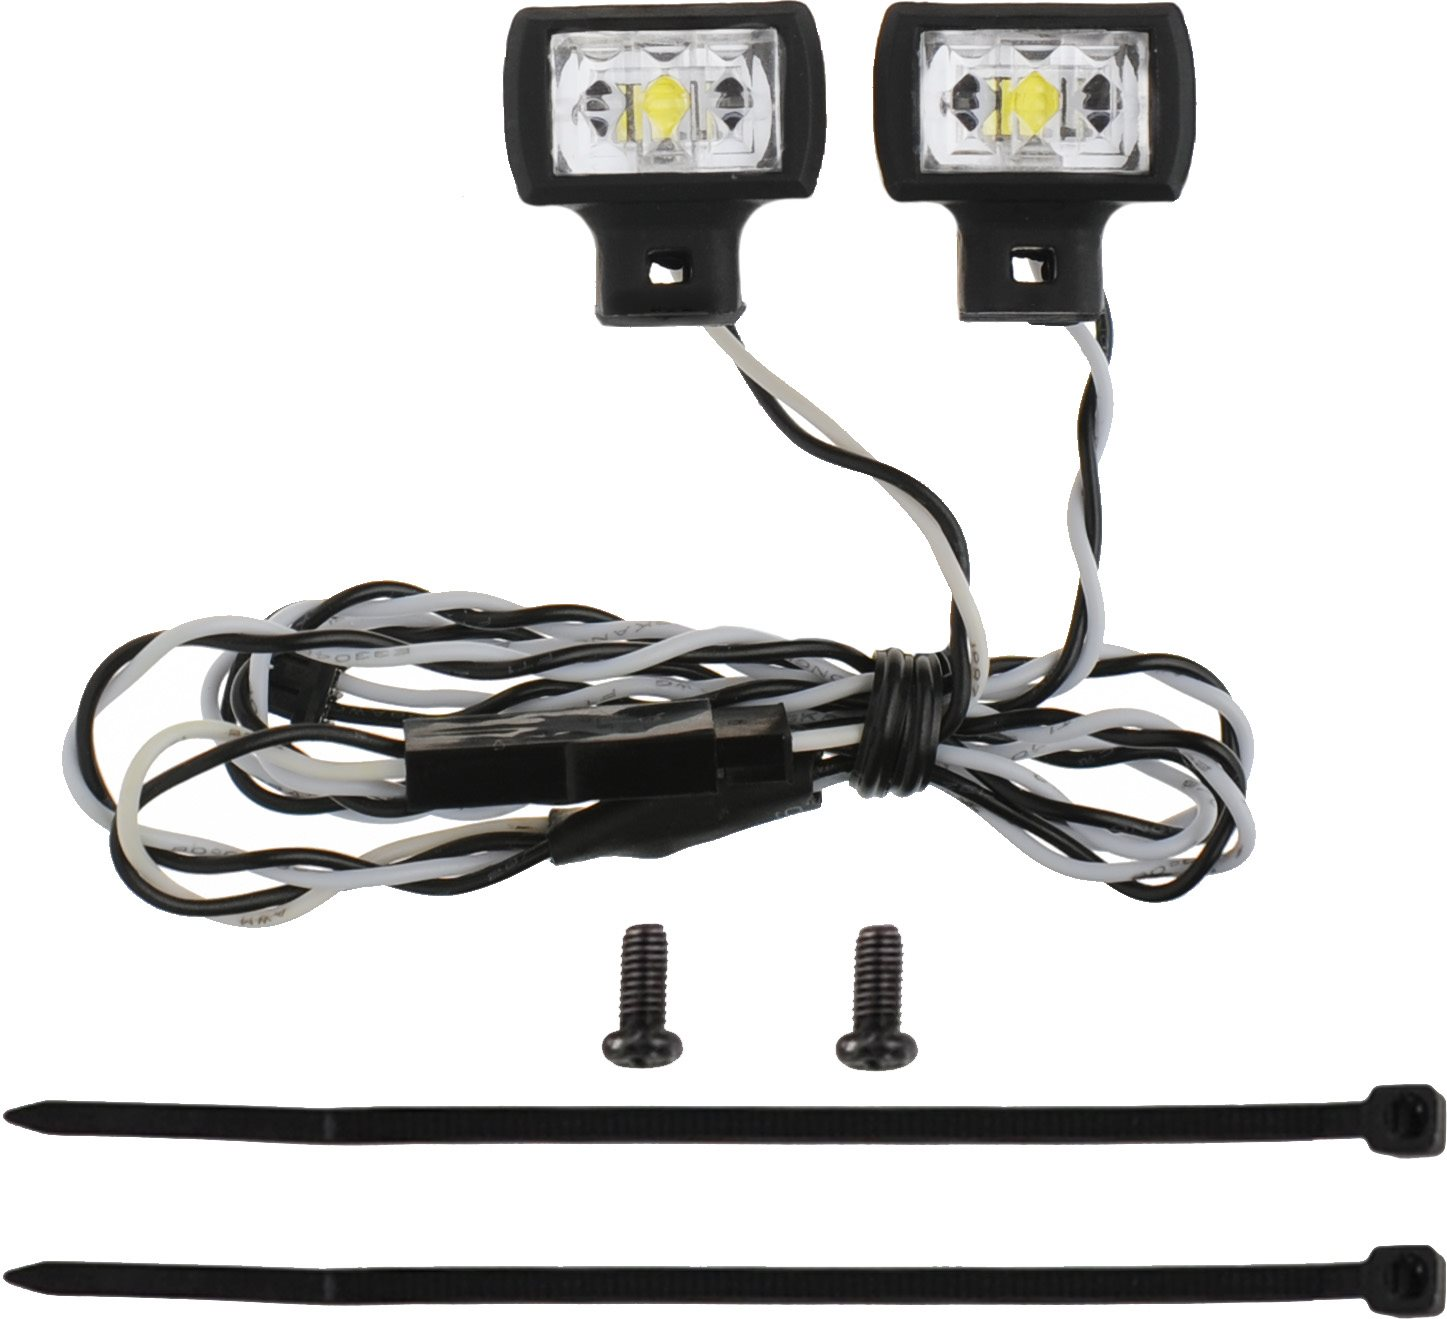 MyTrickRC Spotlights High Power - 2-High Power Spotlights With Mounting Br